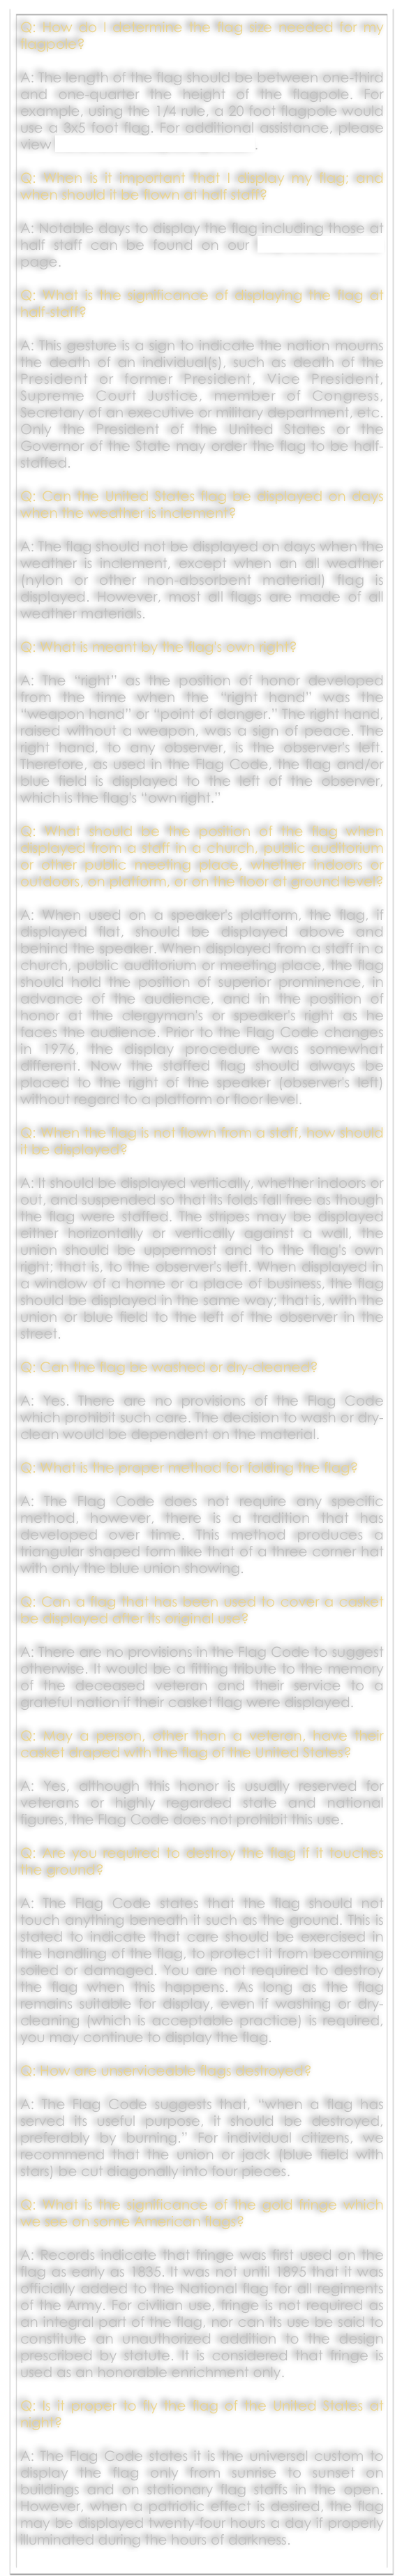 Q: How do I determine the flag size needed for my flagpole?  A: The length of the flag should be between one-third and one-quarter the height of the flagpole. For example, using the 1/4 rule, a 20 foot flagpole would use a 3x5 foot flag. For additional assistance, please view The Emerson Flag Sizing Chart.   Q: When is it important that I display my flag; and when should it be flown at half staff?  A: Notable days to display the flag including those at half staff can be found on our Flag Display Days page.  Q: What is the significance of displaying the flag at half-staff?  A: This gesture is a sign to indicate the nation mourns the death of an individual(s), such as death of the President or former President, Vice President, Supreme Court Justice, member of Congress, Secretary of an executive or military department, etc. Only the President of the United States or the Governor of the State may order the flag to be half-staffed. 